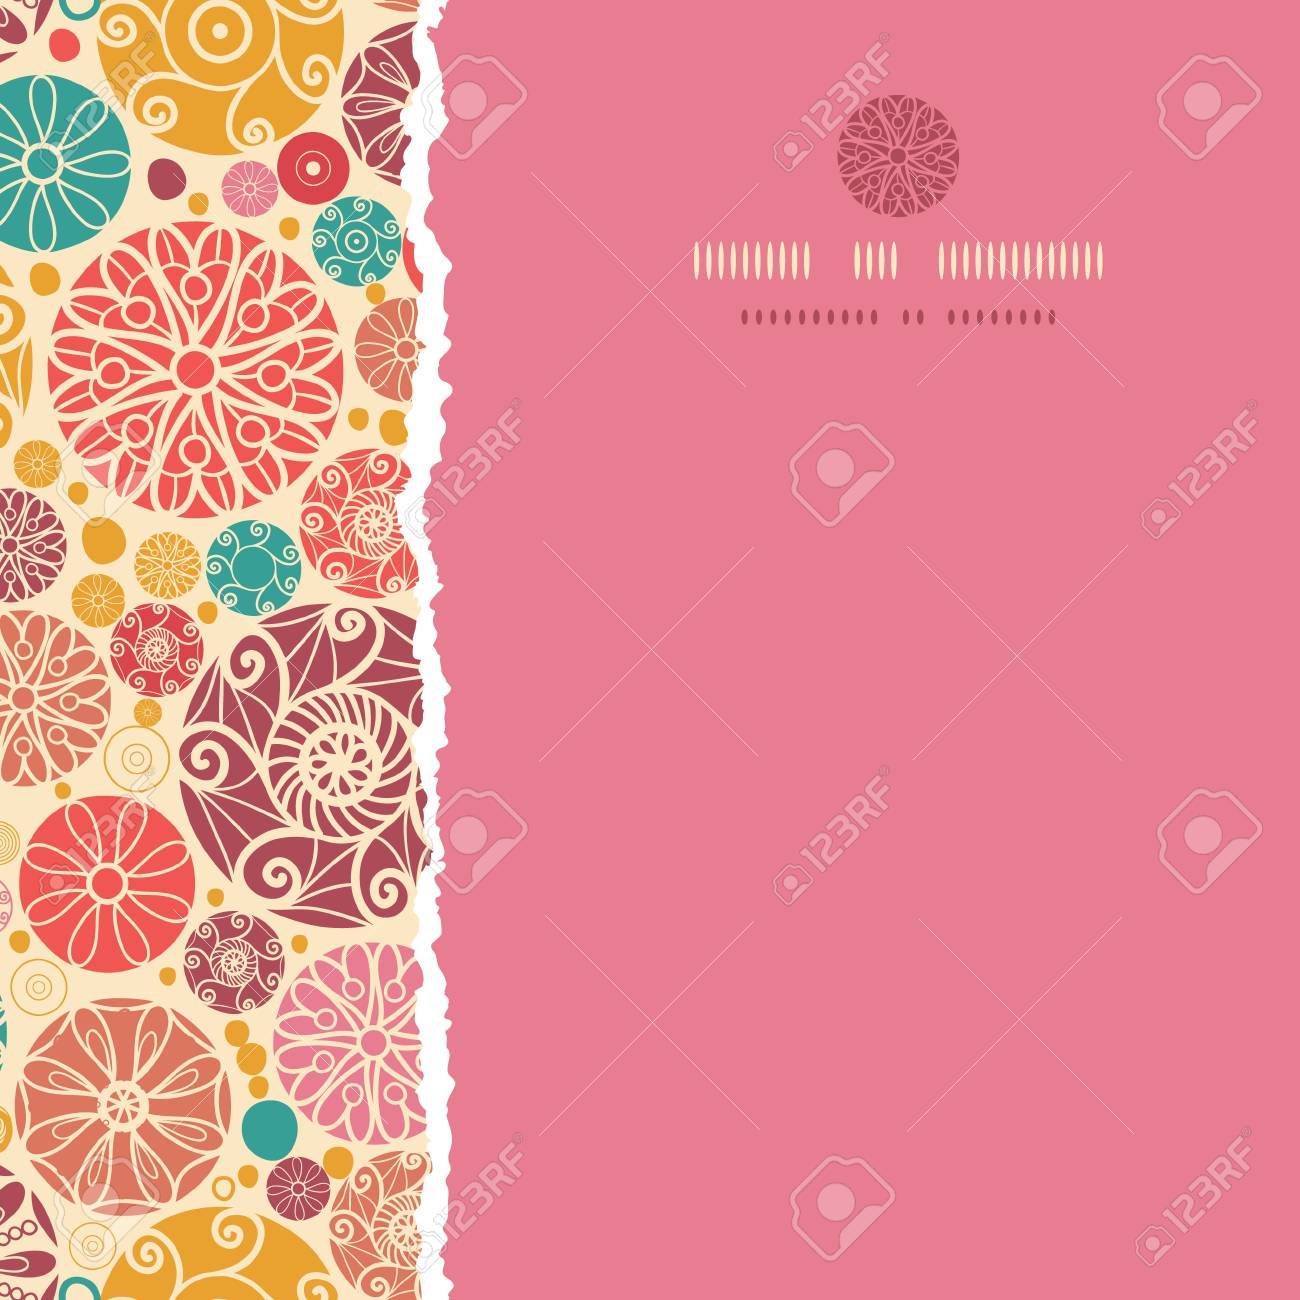 Abstract decorative circles square torn seamless pattern background Stock Vector - 18865186